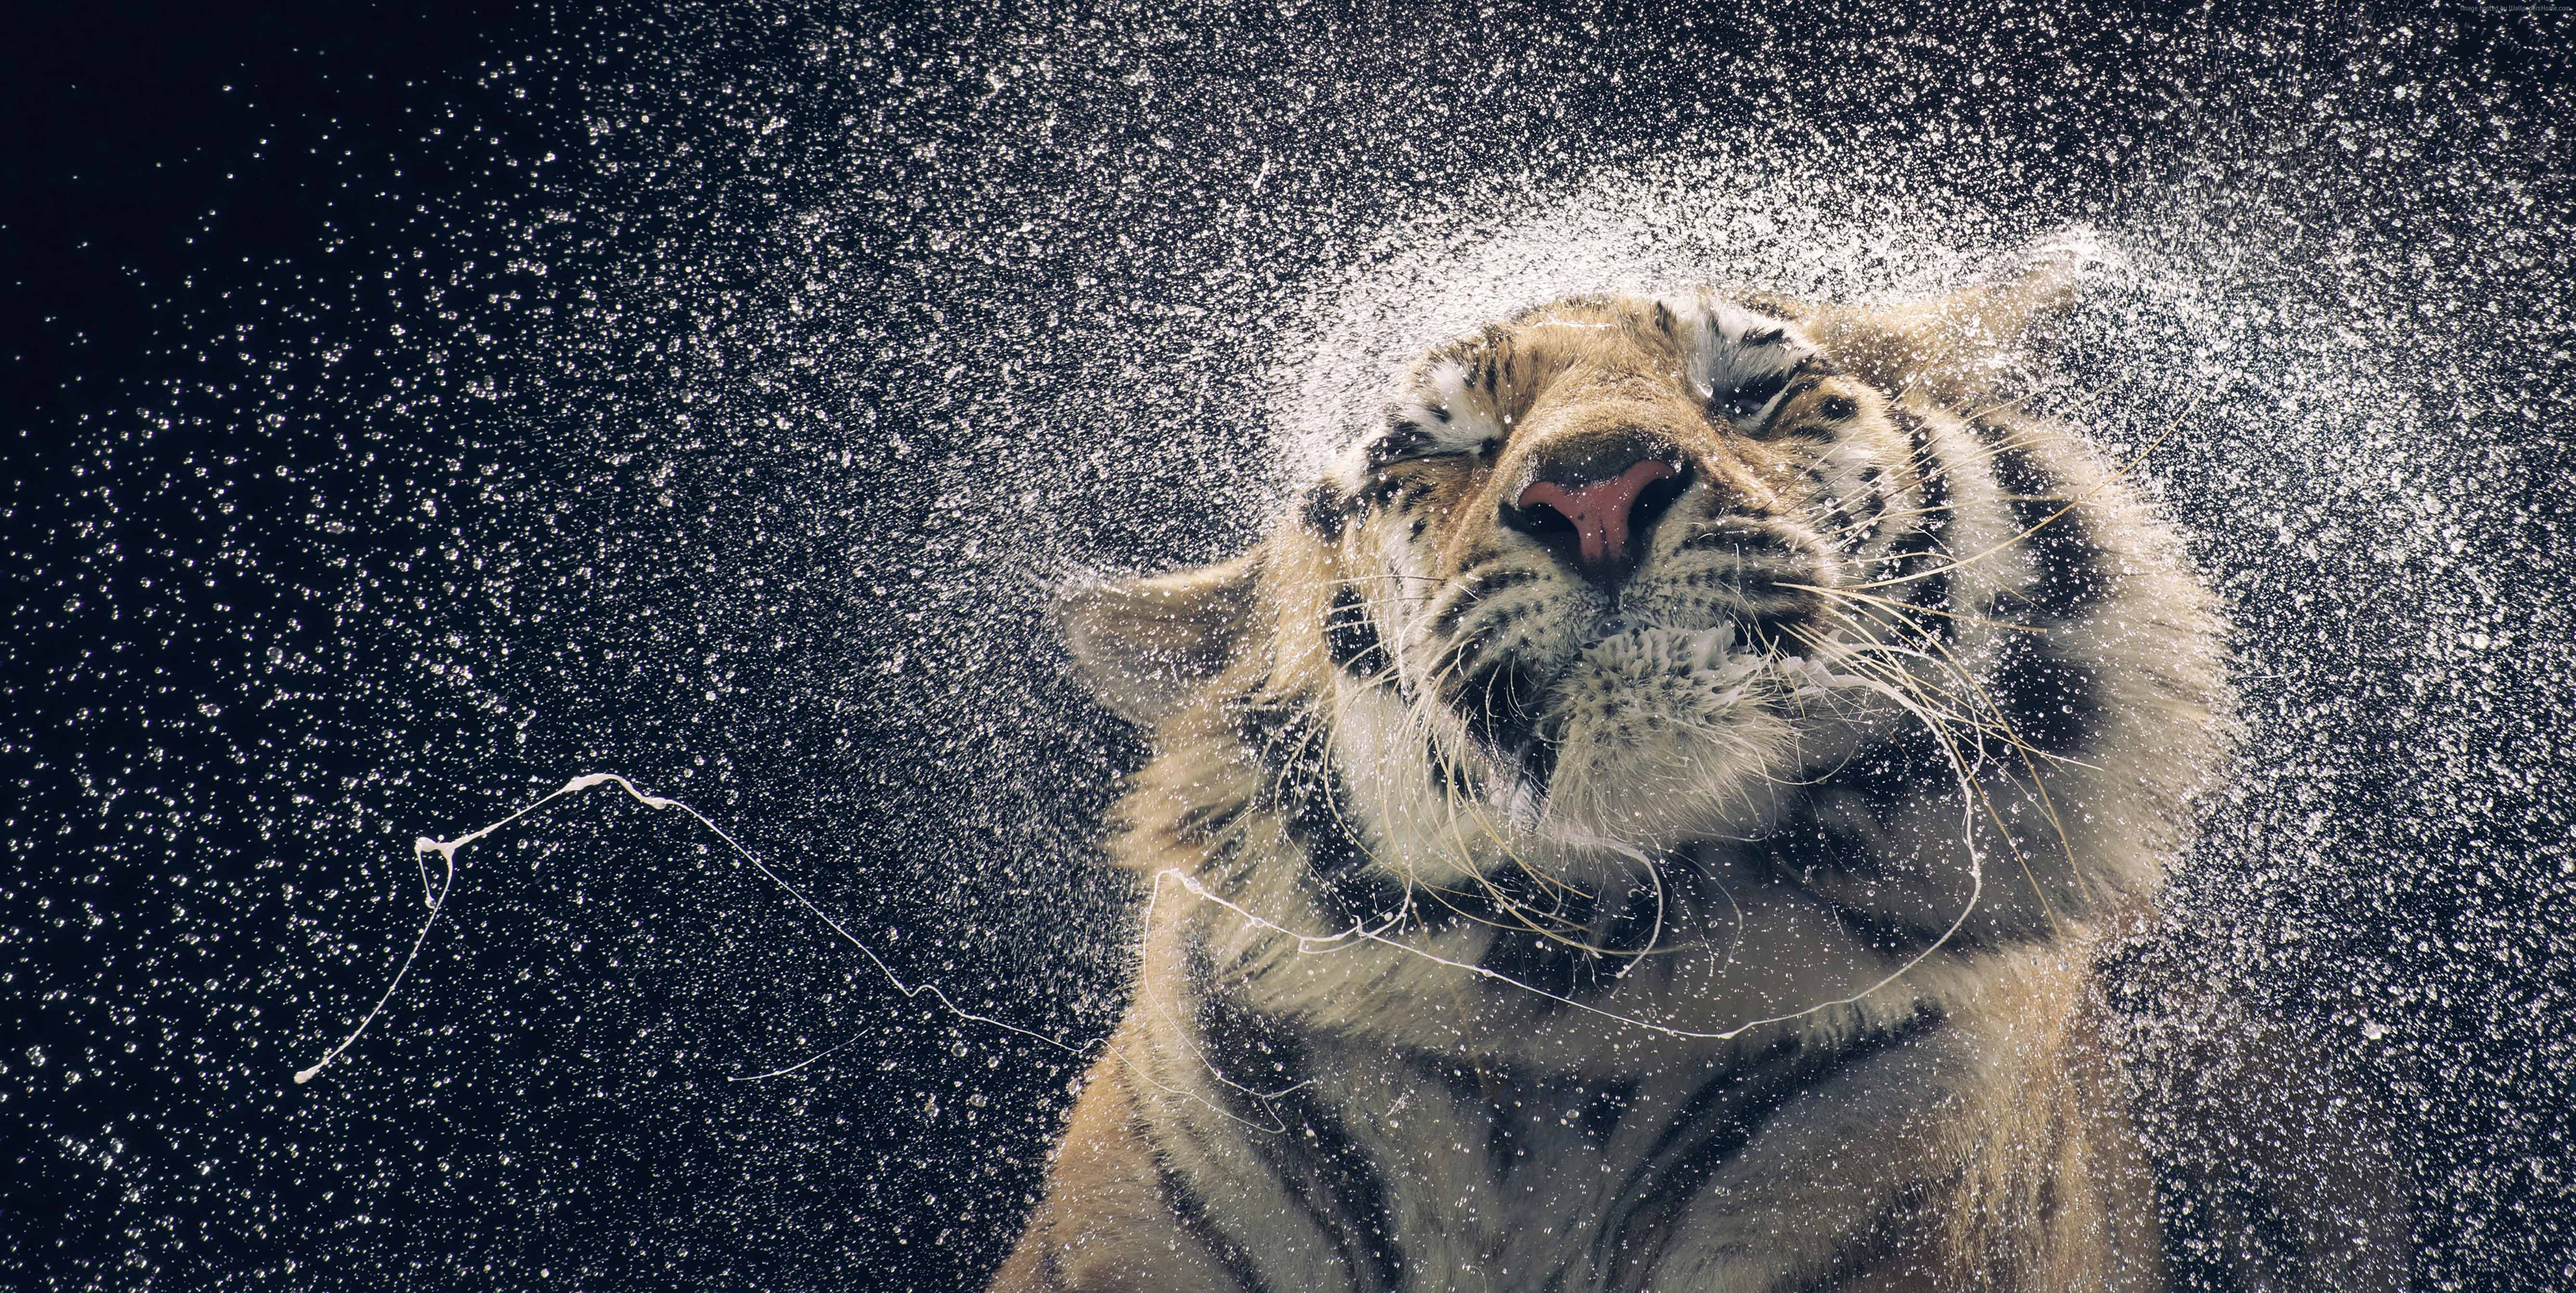 a tiger coming out of water animal hd wallpaper 5347x2683